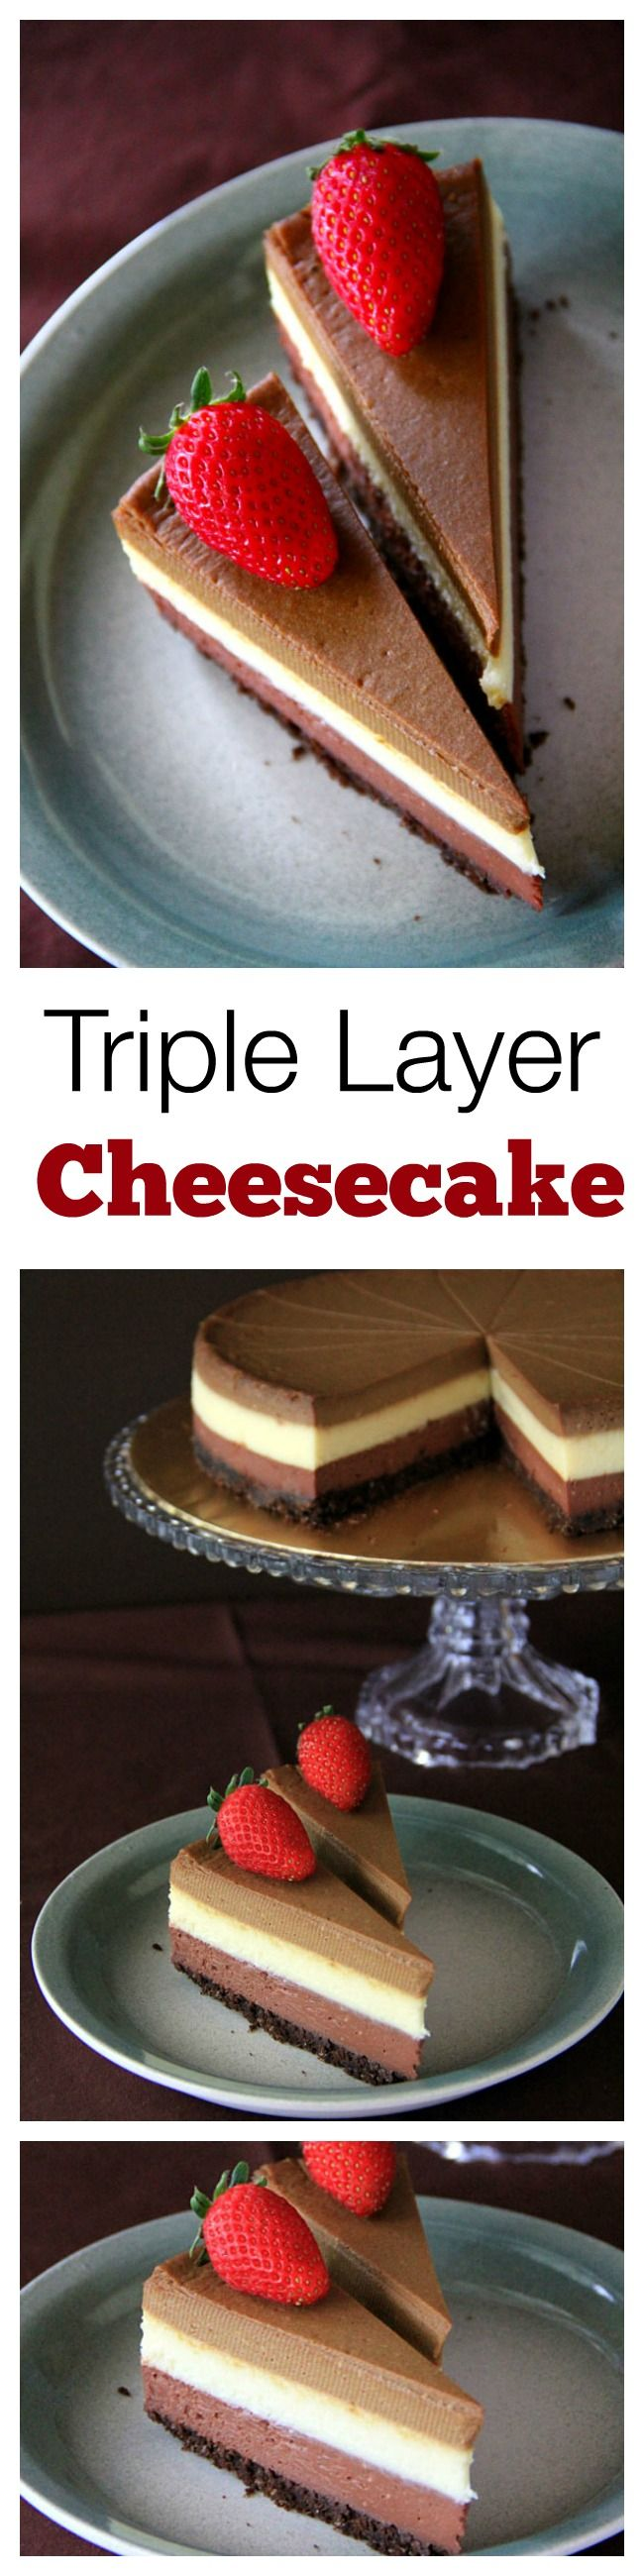 Triple Layer Cheesecake – the BEST, creamiest, richest cheesecake you'll ever make, in dark chocolate, white chocolate & Kahlua coffee flavor